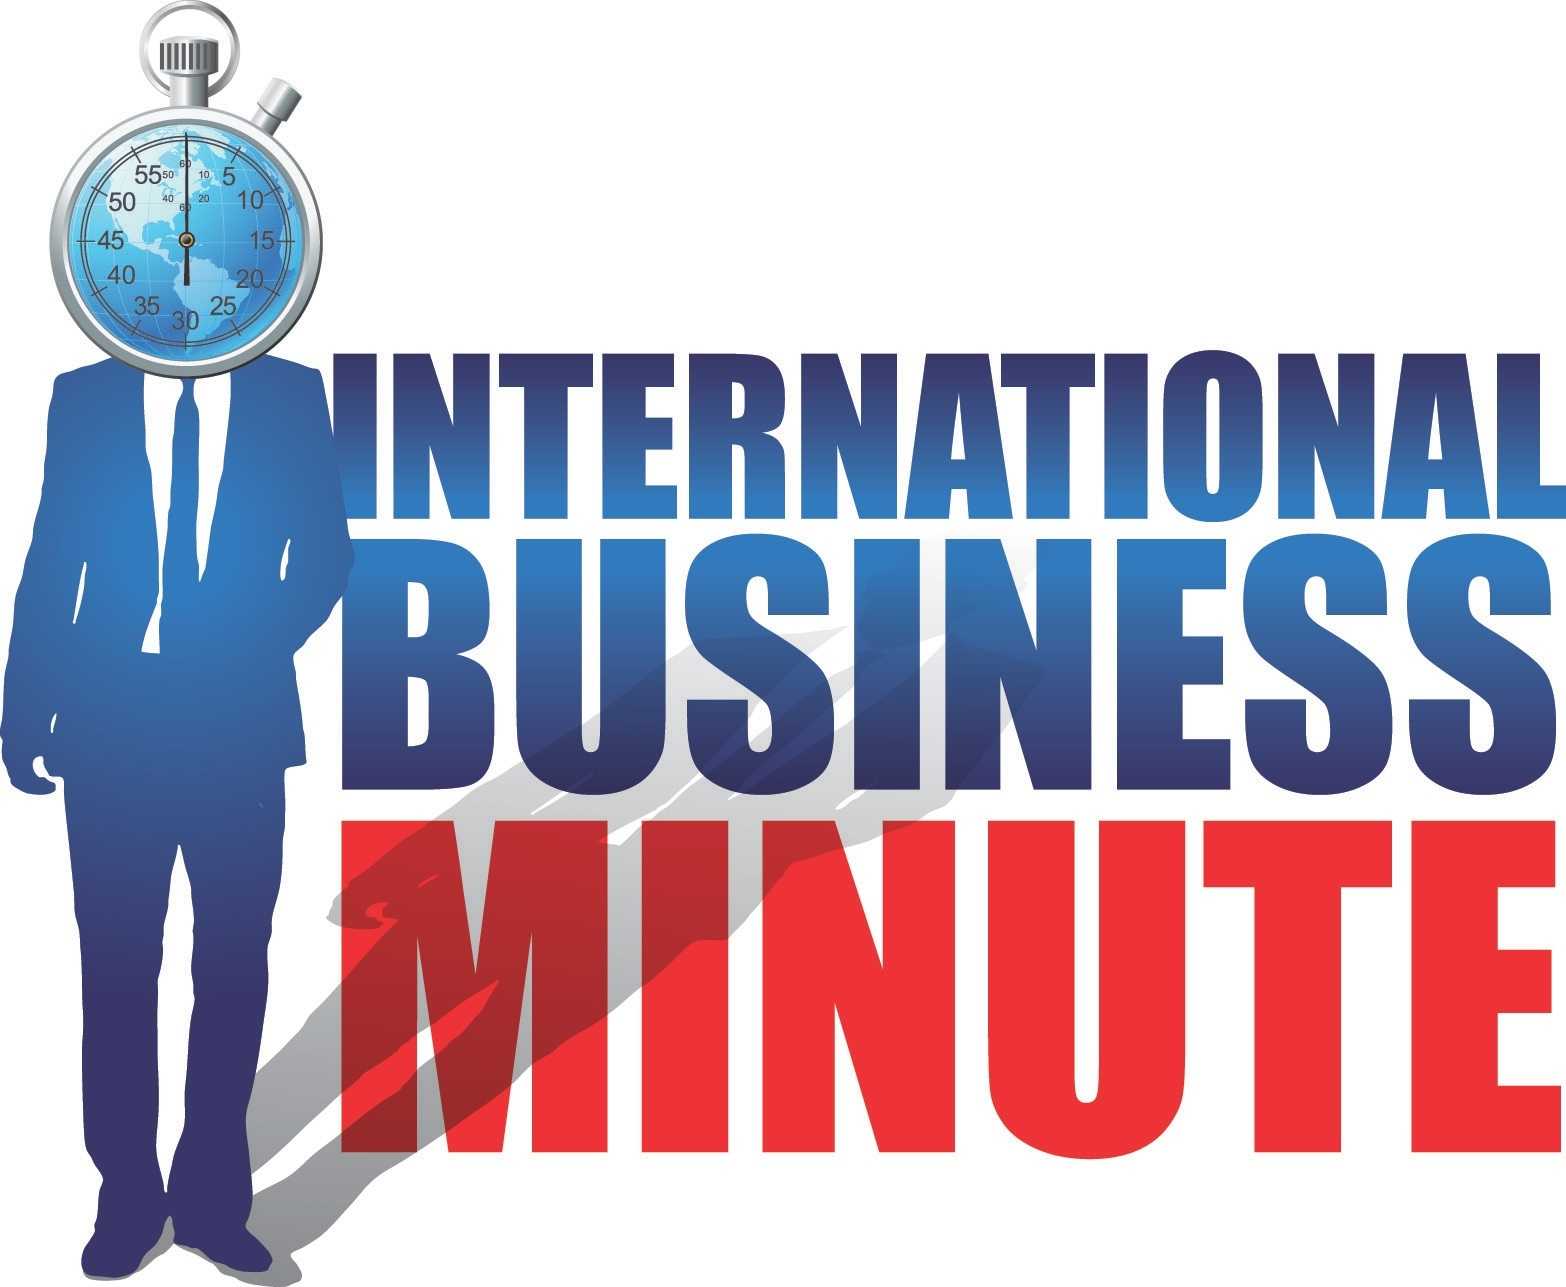 International business videos